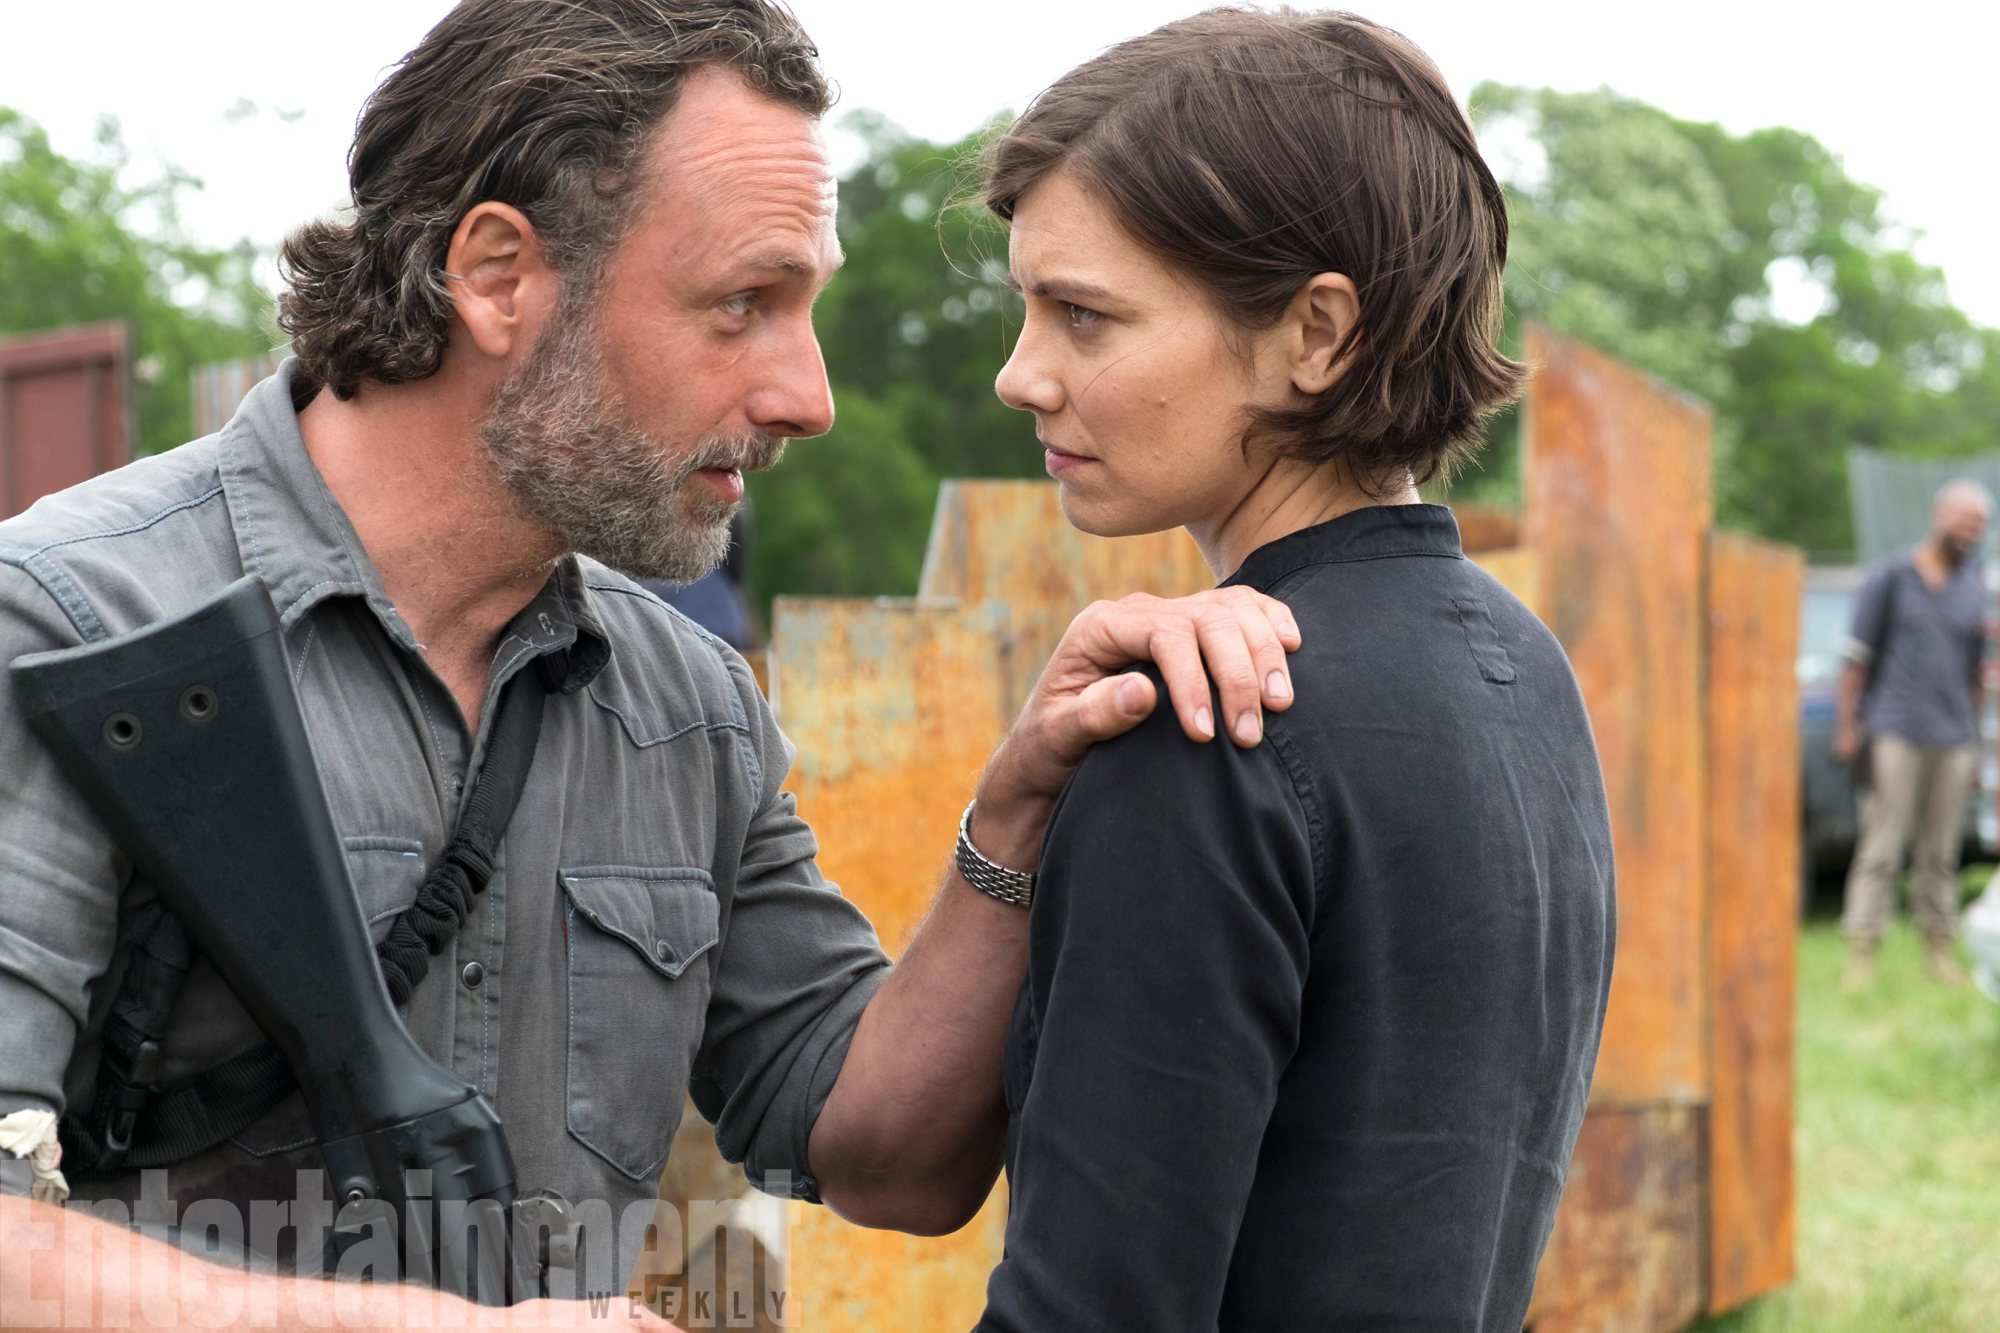 The Walking DeadSeason 8, Episode 1Andrew Lincoln as Rick Grimes, Lauren Cohan as Maggie GreeneÂ